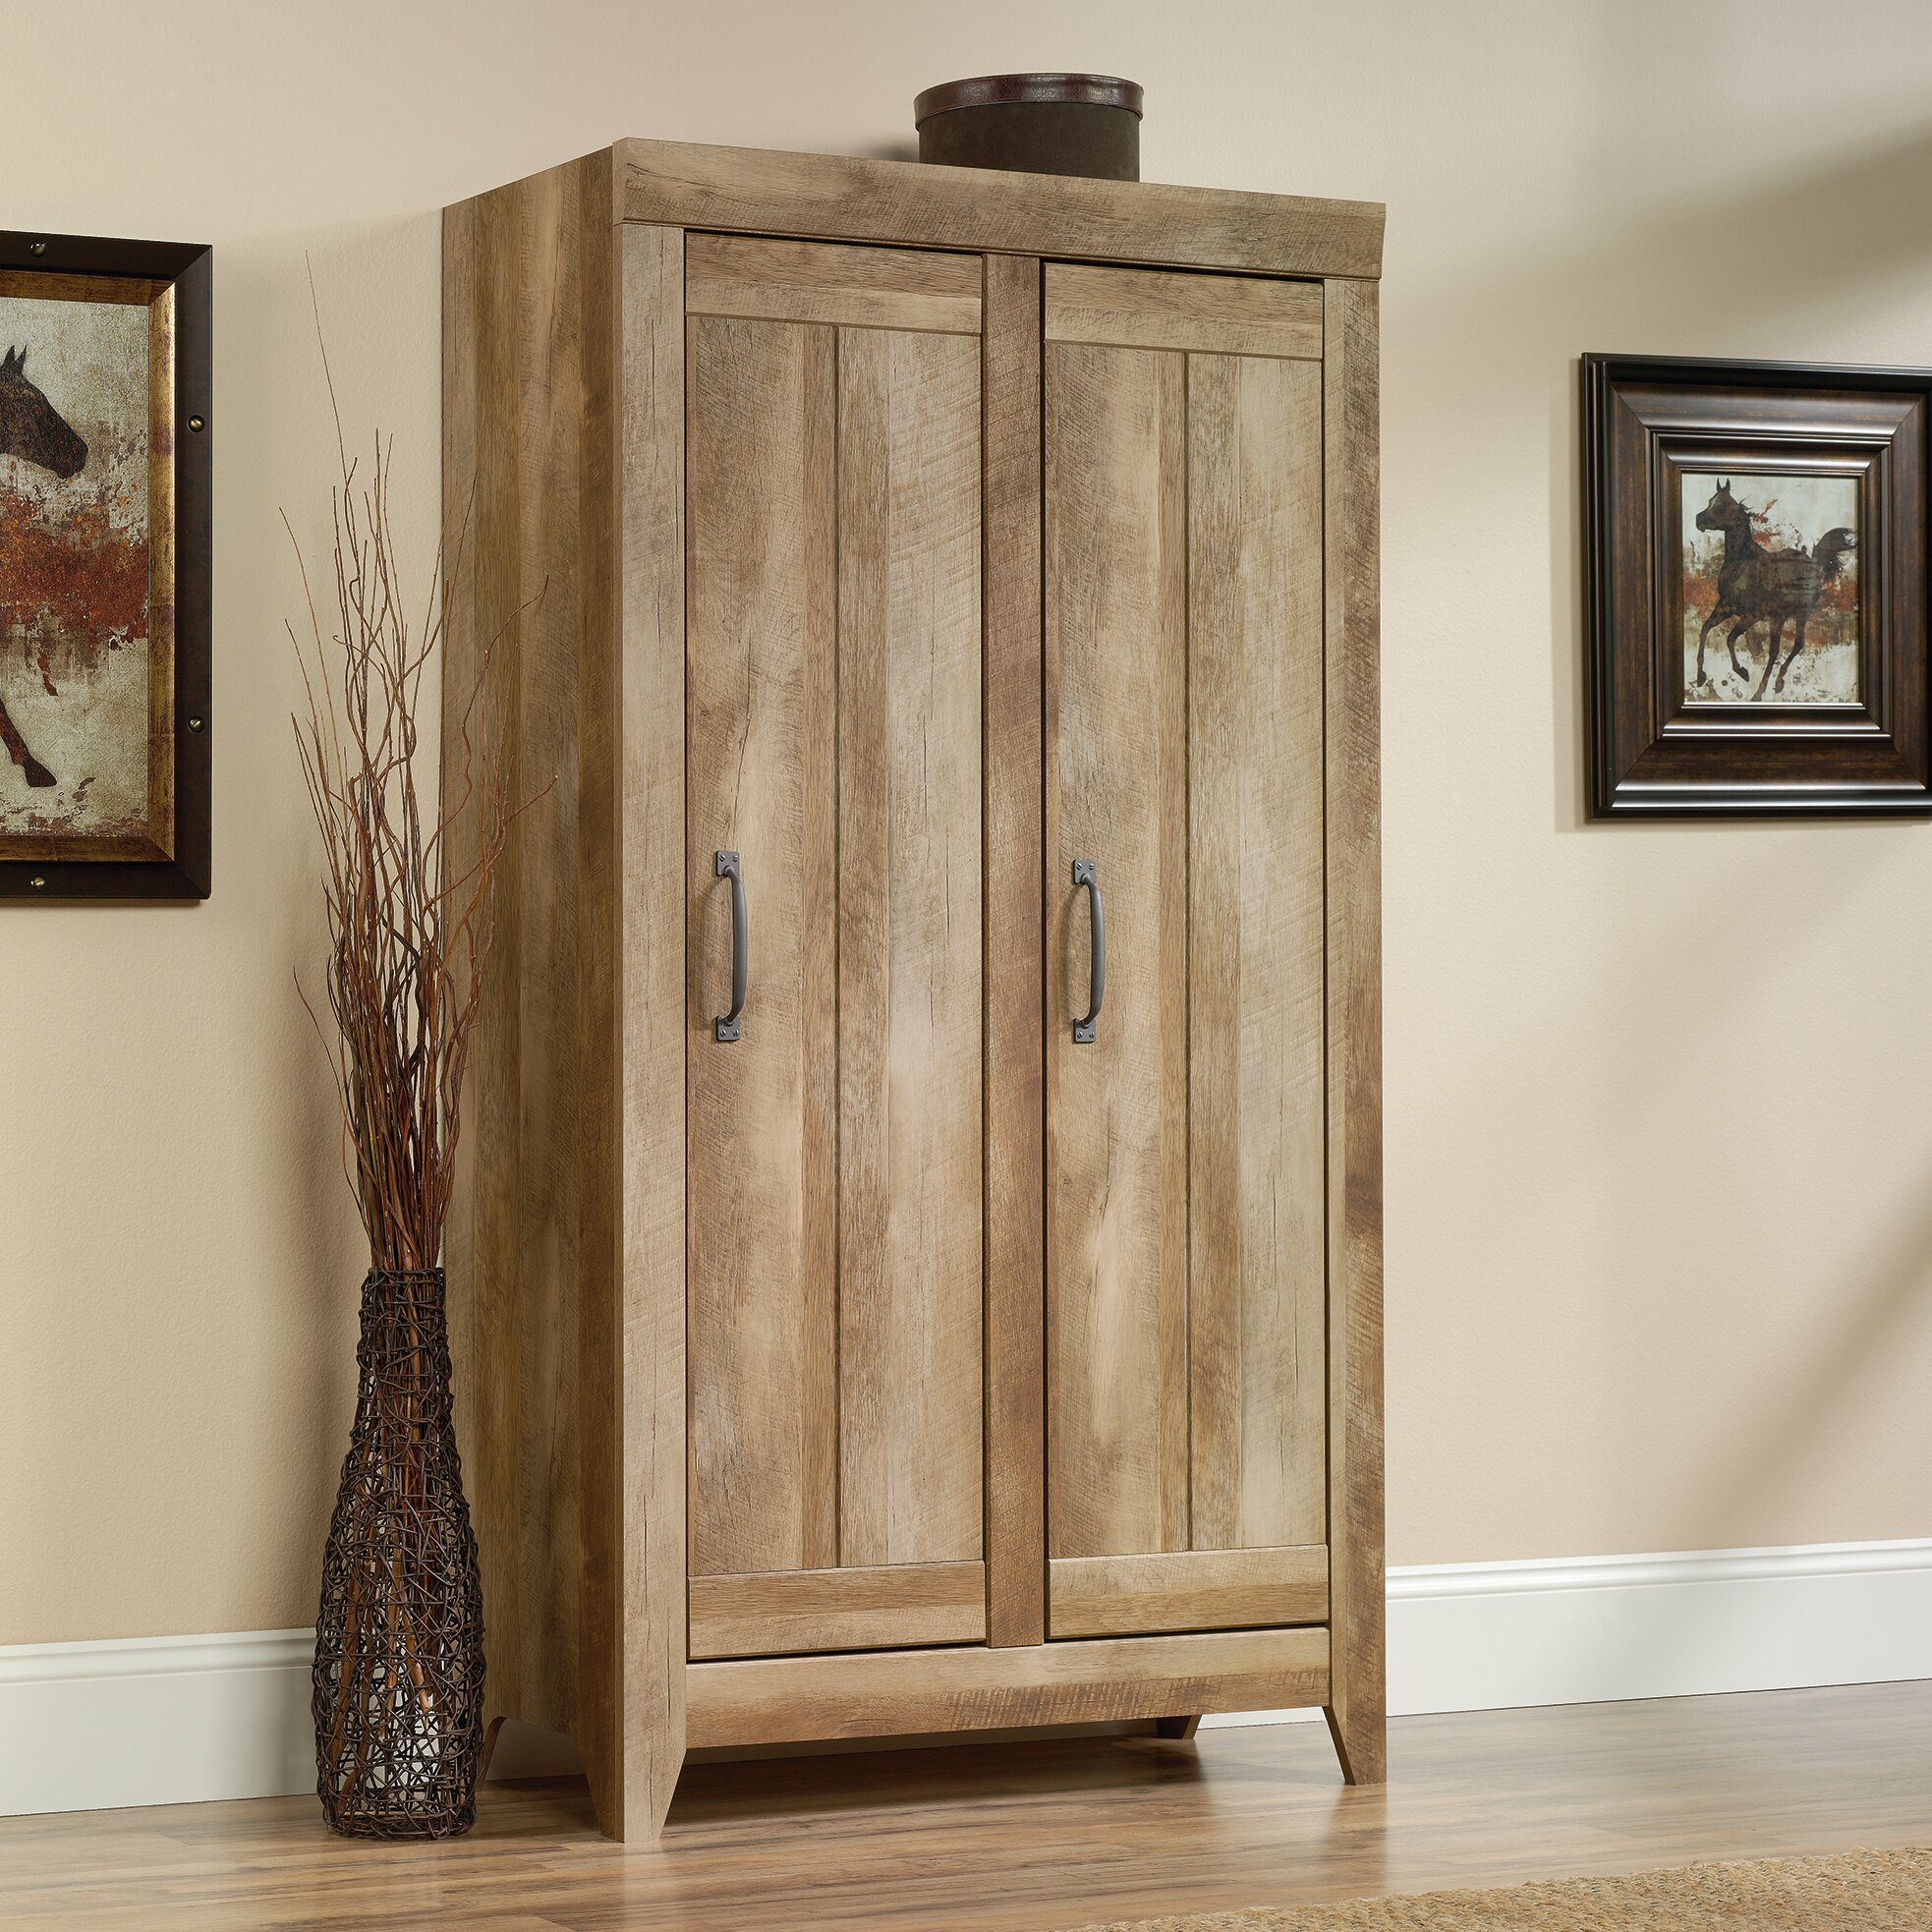 Wooden Storage Cabinets With Doors Andover Mills Orville 2 Door Storage Cabinet Reviews Wayfair